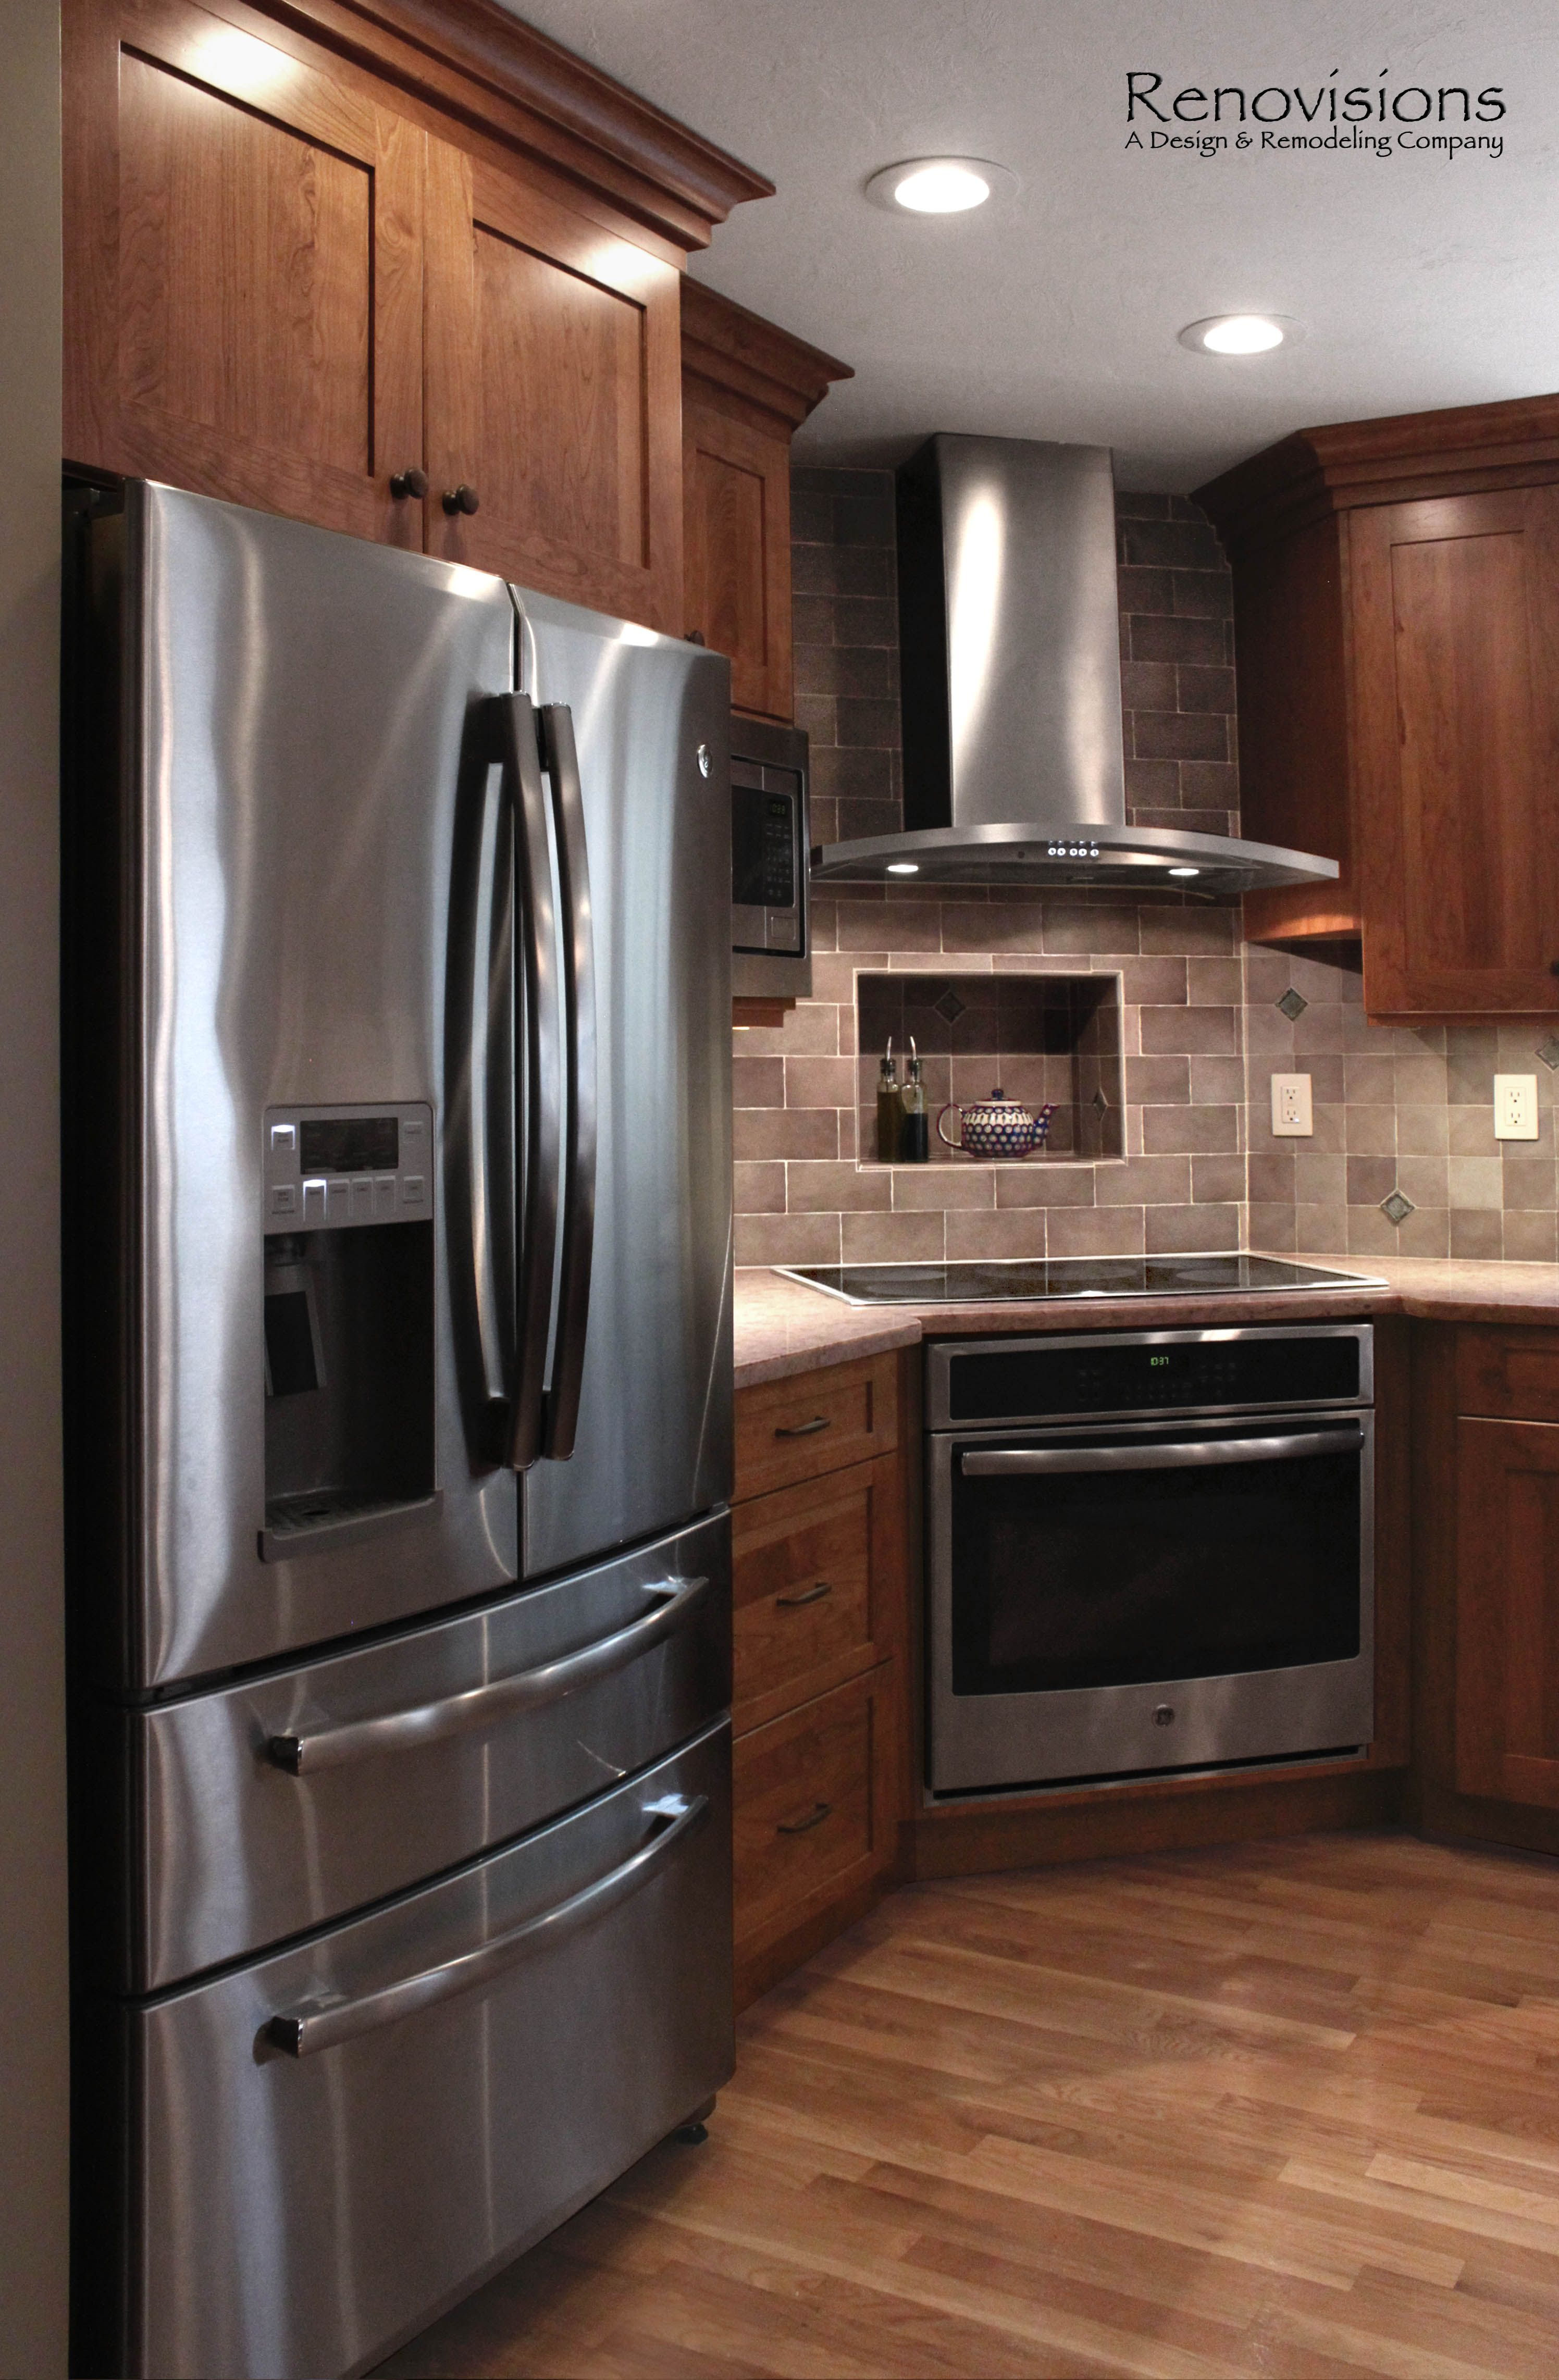 Bon Kitchen Remodel By Renovisions. Induction Cooktop, Stainless Steel  Appliances, Cherry Cabinets, Shaker